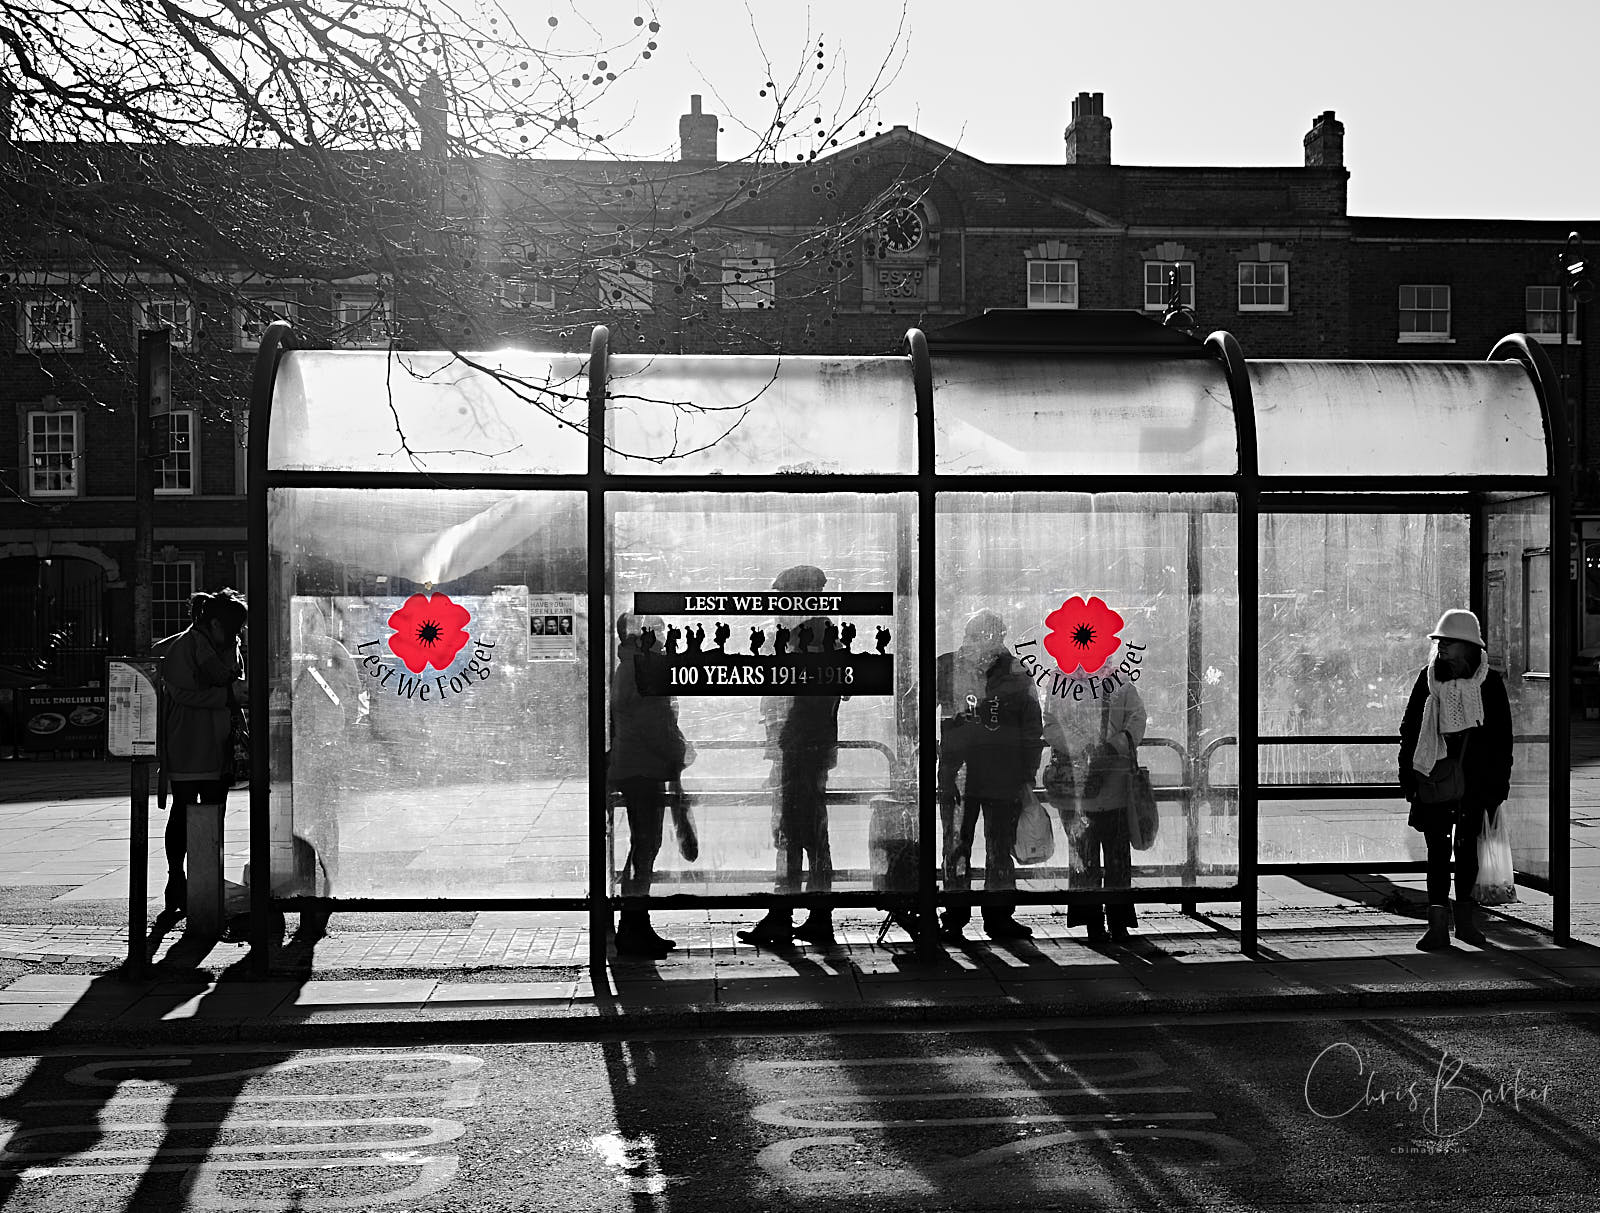 Silhouettes of people in a perspex bus shelter with red poppy designs on the perspex and Lest We Forget between